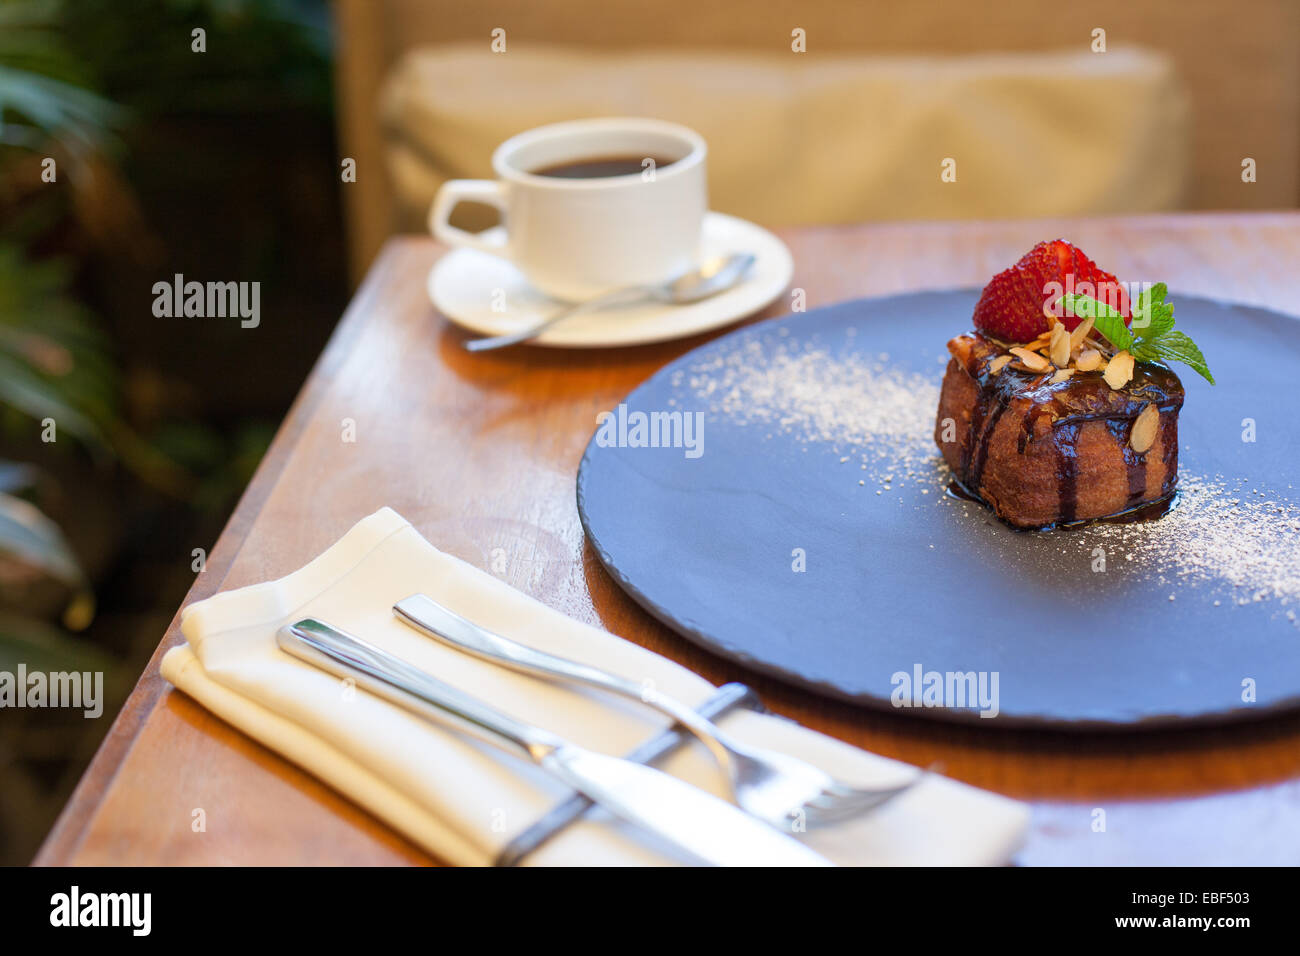 Pastry dessert with coffee on table in high end restaurant - Stock Image